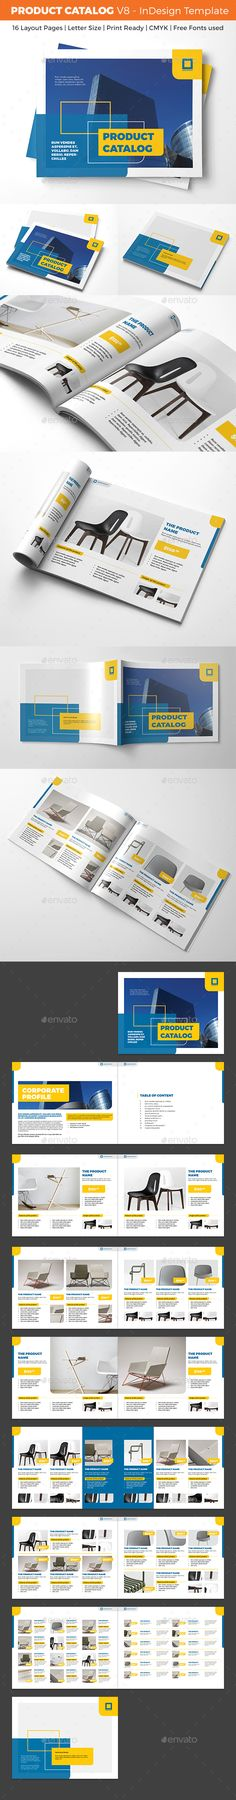 Product Catalog Template InDesign INDD. Download here: http://graphicriver.net/item/product-catalog-template-v8/14723168?ref=ksioks